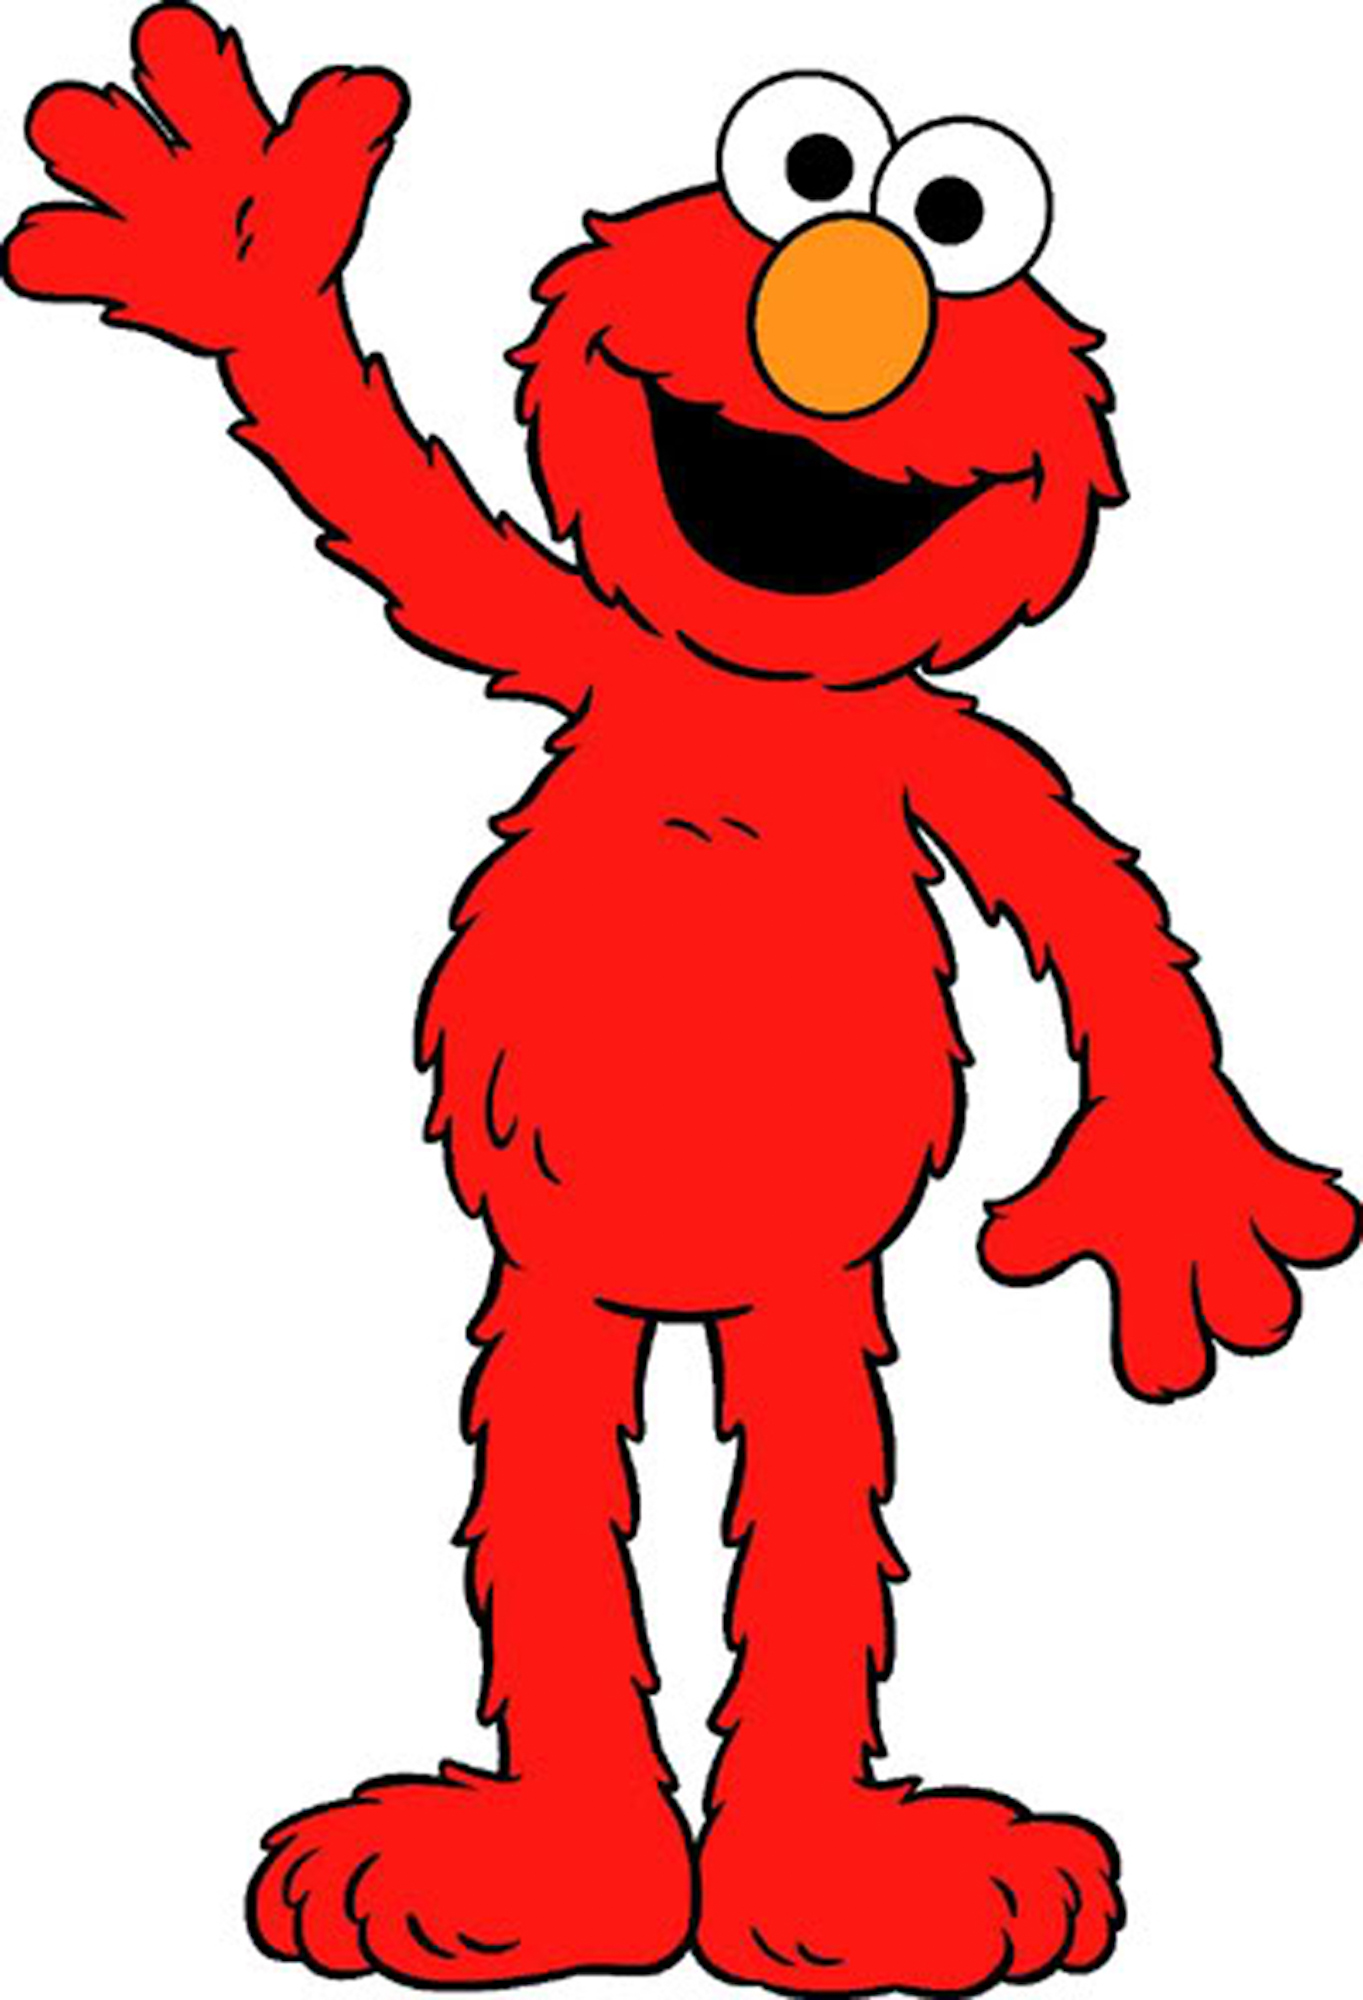 picture regarding Printable Elmo Face named Elmo Confront Cost-free Printable free of charge graphic